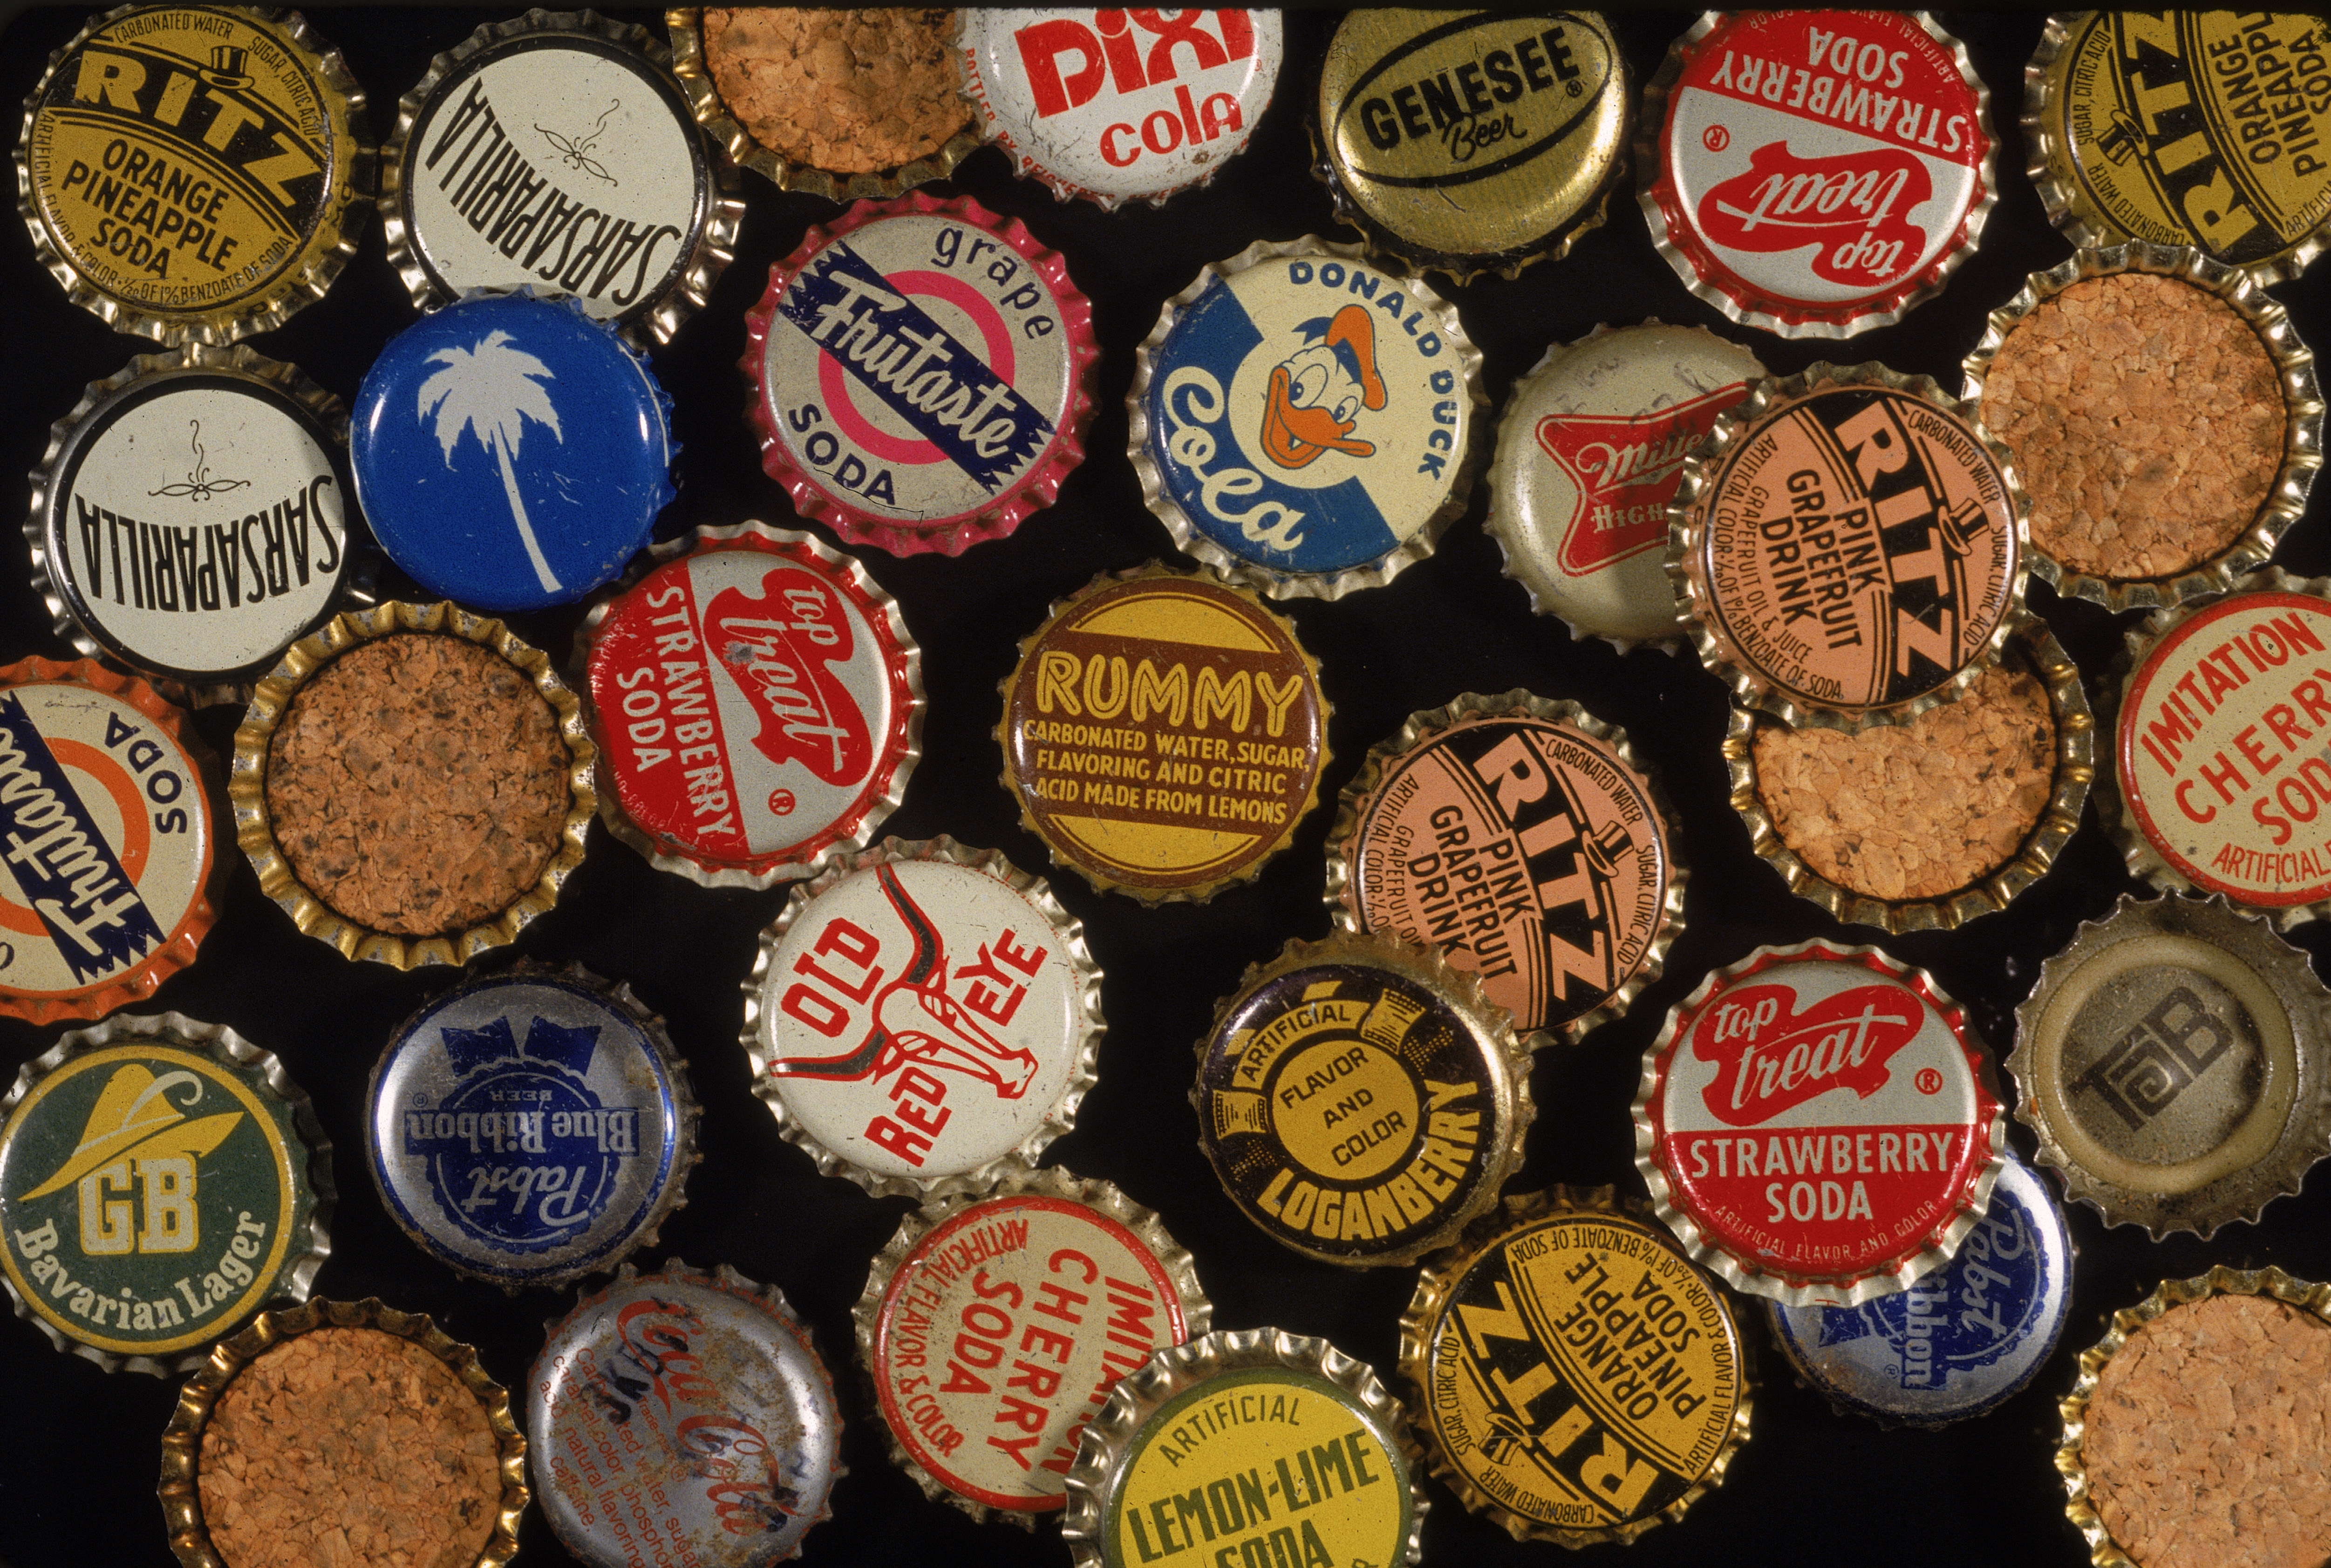 An assortment of American soda, juice, and beer bottle caps mostly from the 1950s and early 1960s. Some are flipped-over to show cork backing. (Photo by Blank Archives/Getty Images)